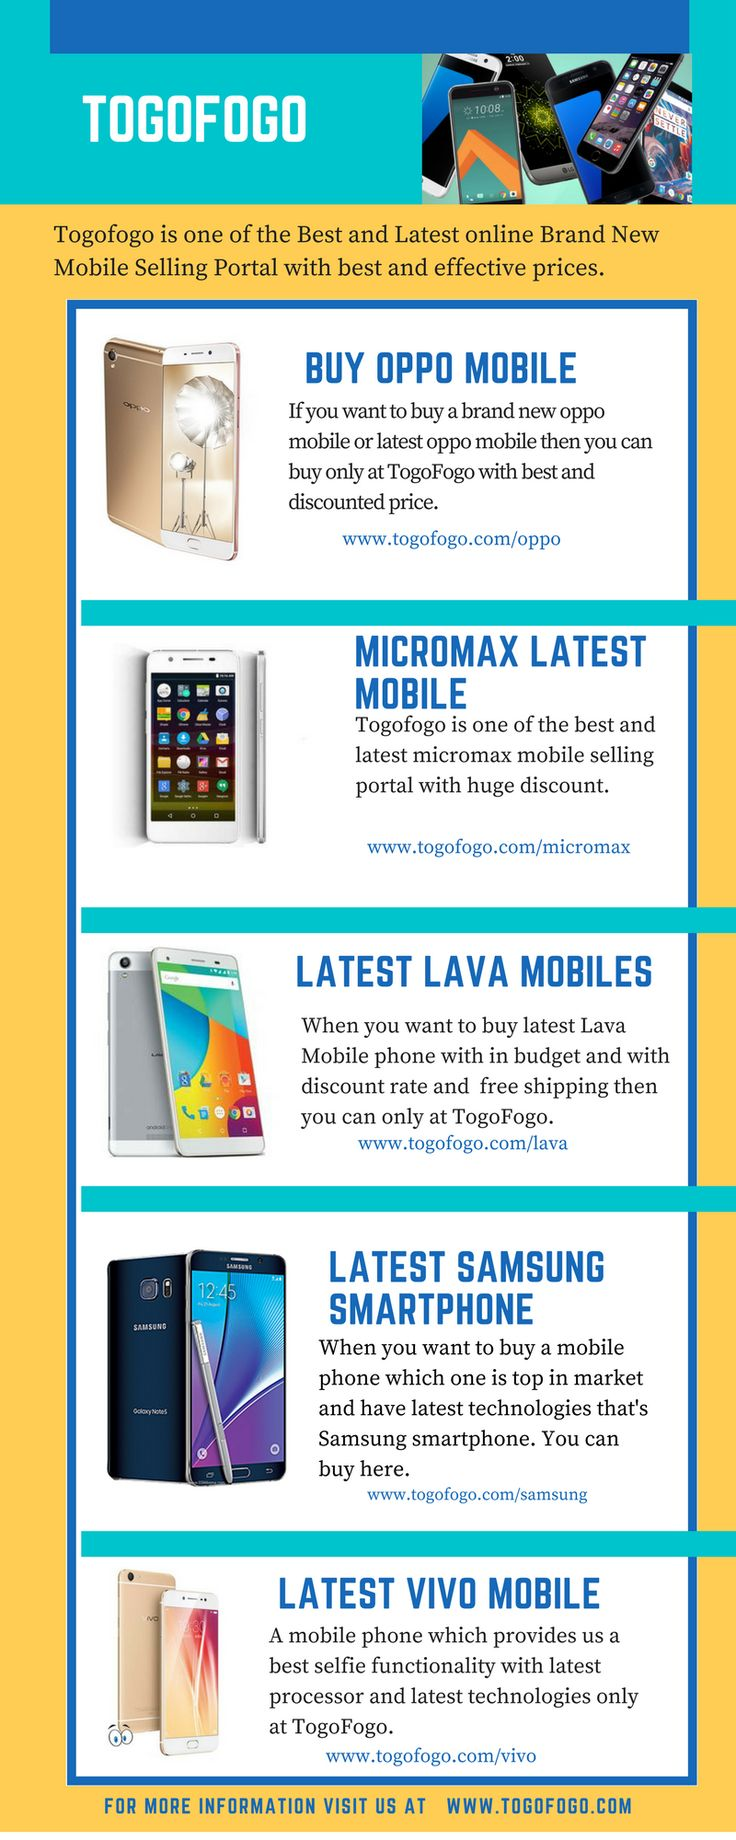 Togofogo is one of the best online brand new mobile phone selling portal with affordable prices. Here you can buy low range mobile with best condition and effective prices. Here you can also buy mobile phone, Laptop and Tablets at affordable prices.